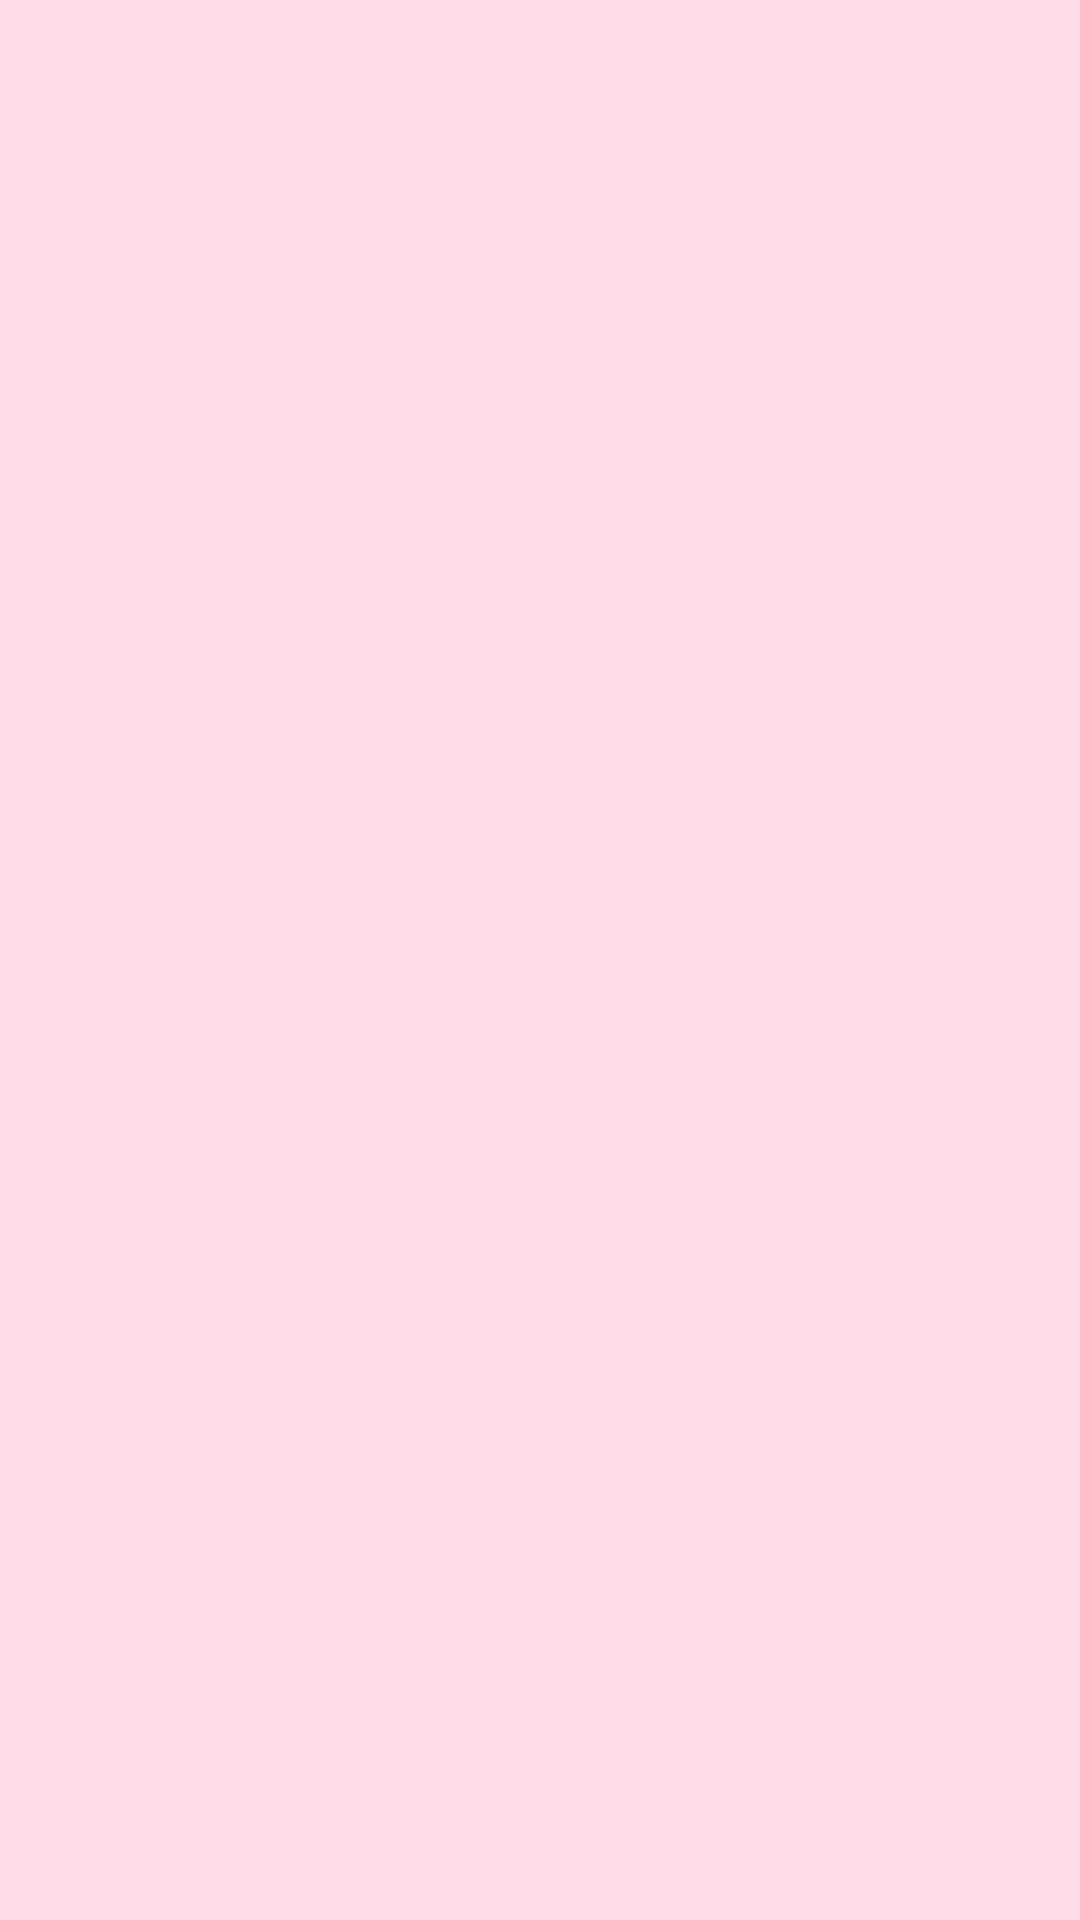 Plain baby pink wallpaper | iPhone Wallpapers | Pinterest ...